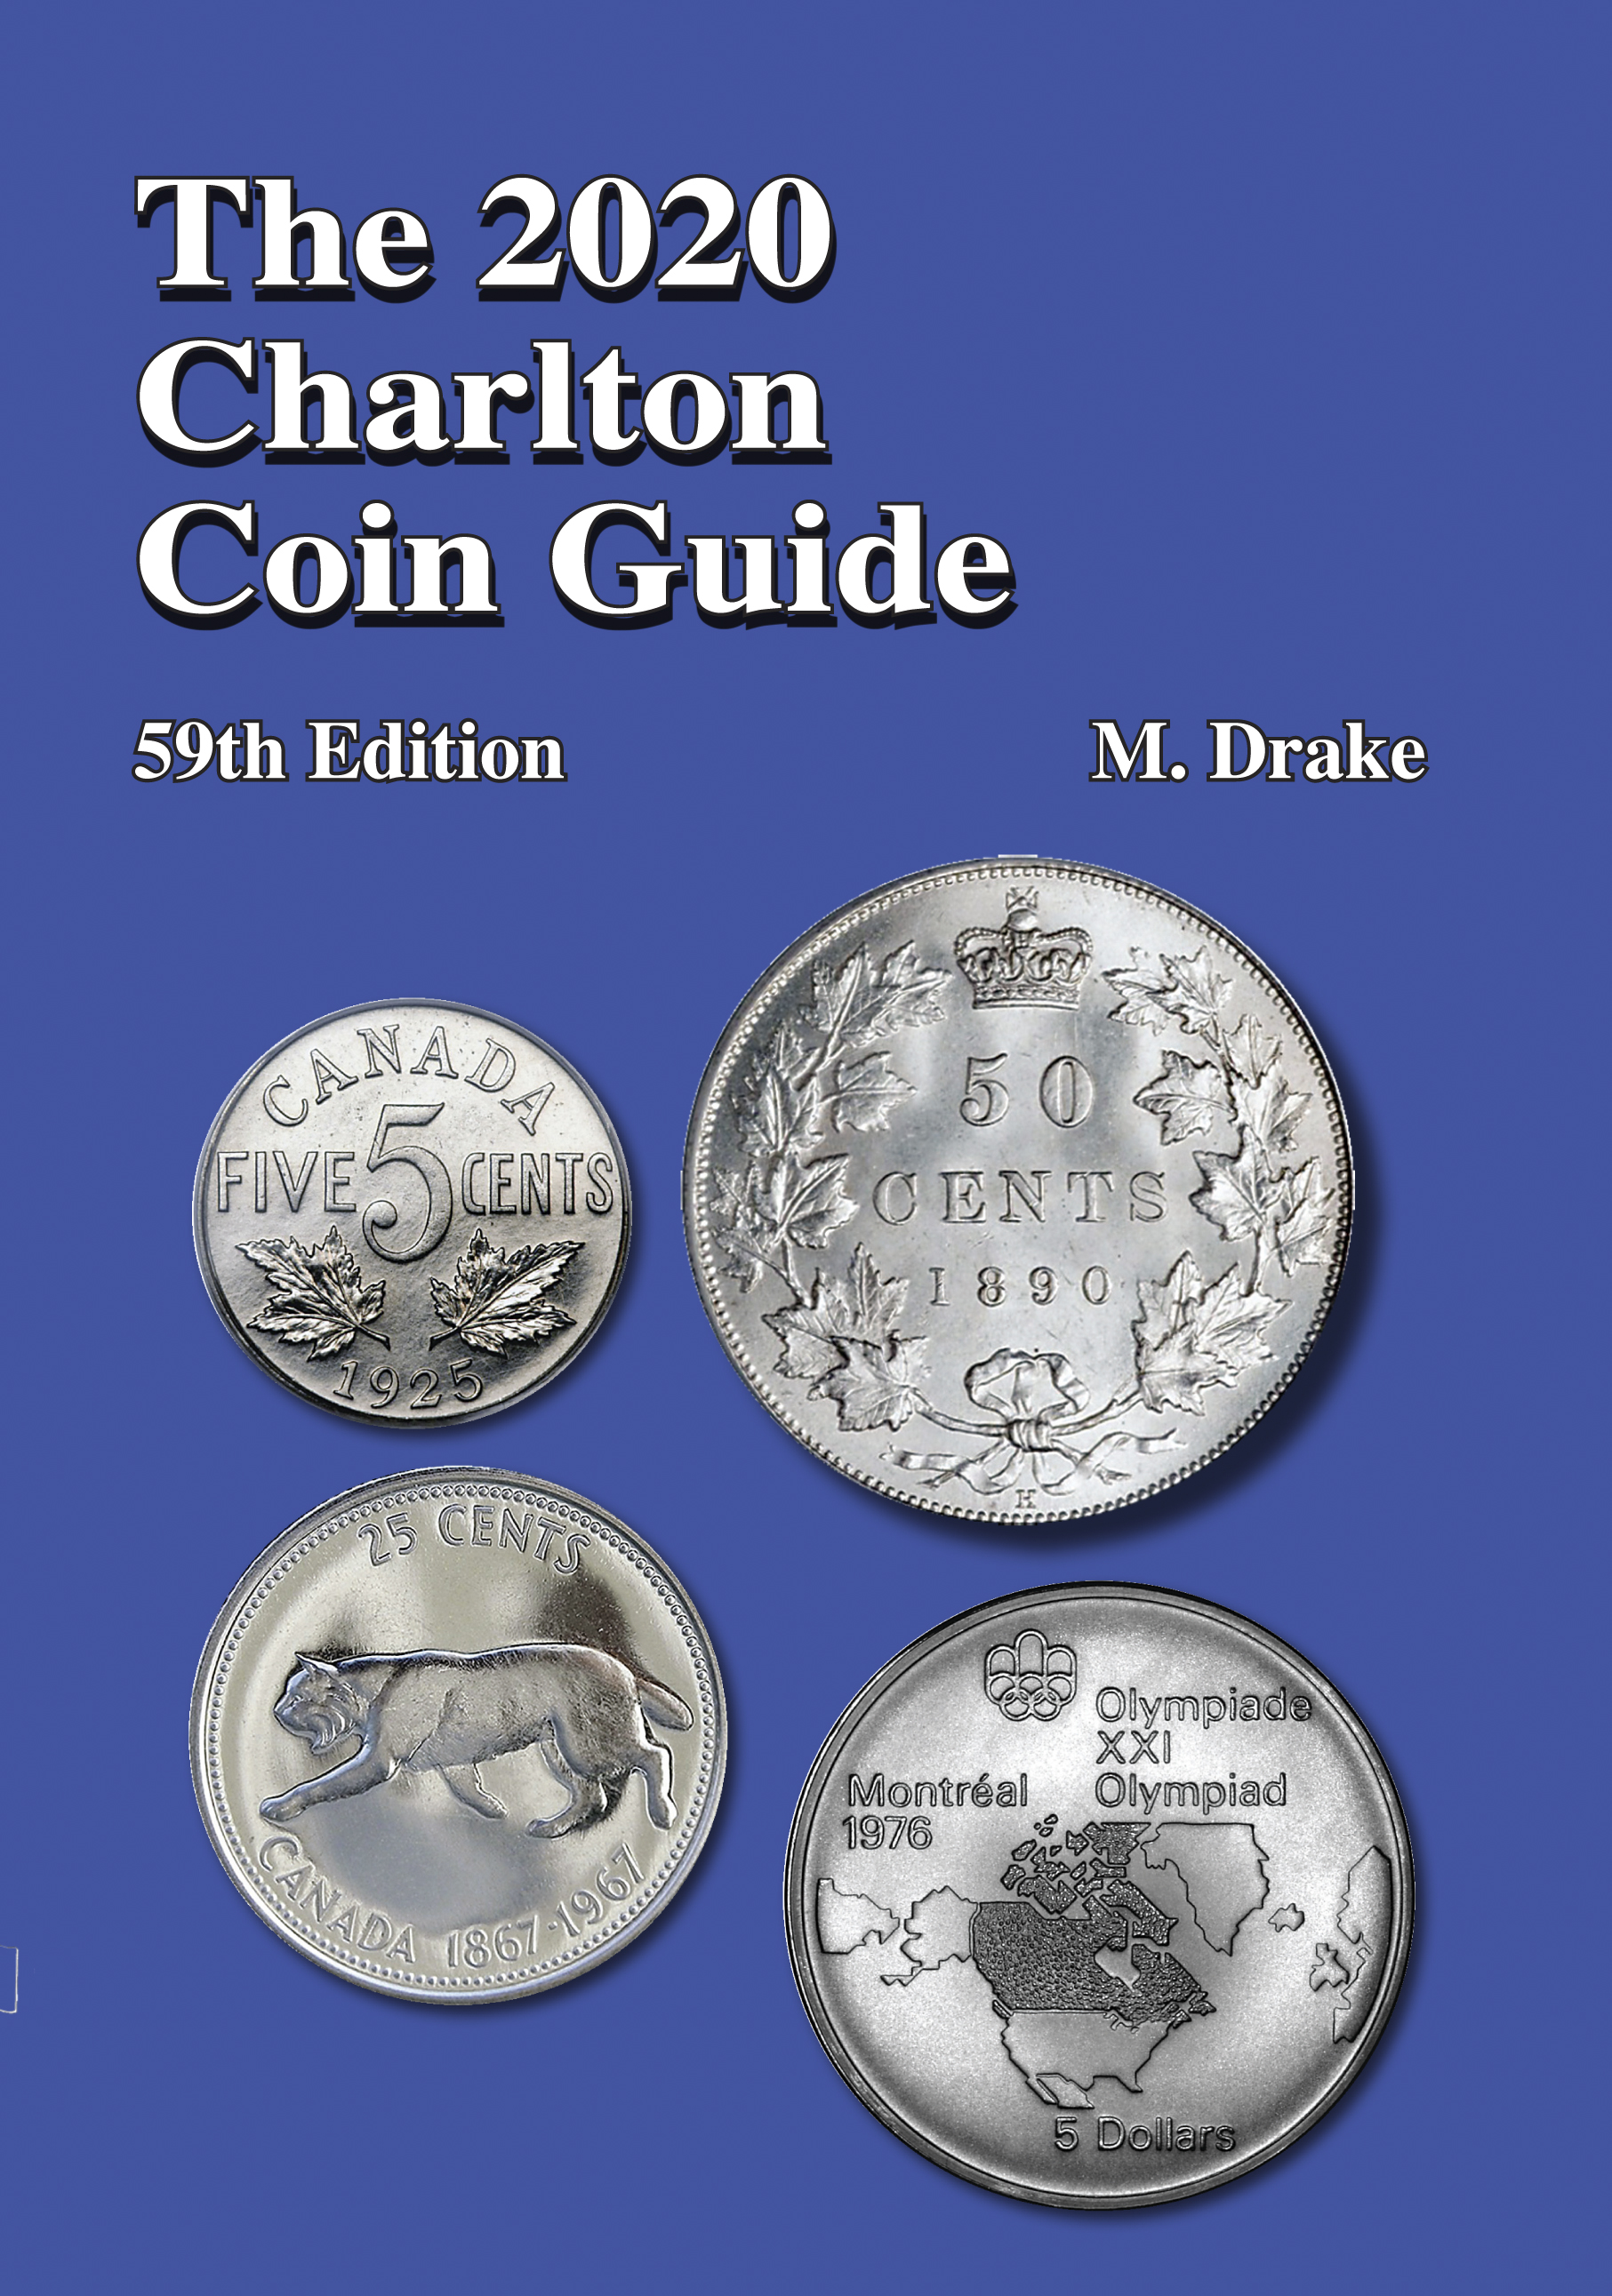 2020 CHARLTON COIN GUIDE, 59TH EDITION.: PRICES DEALERS PAY FOR...